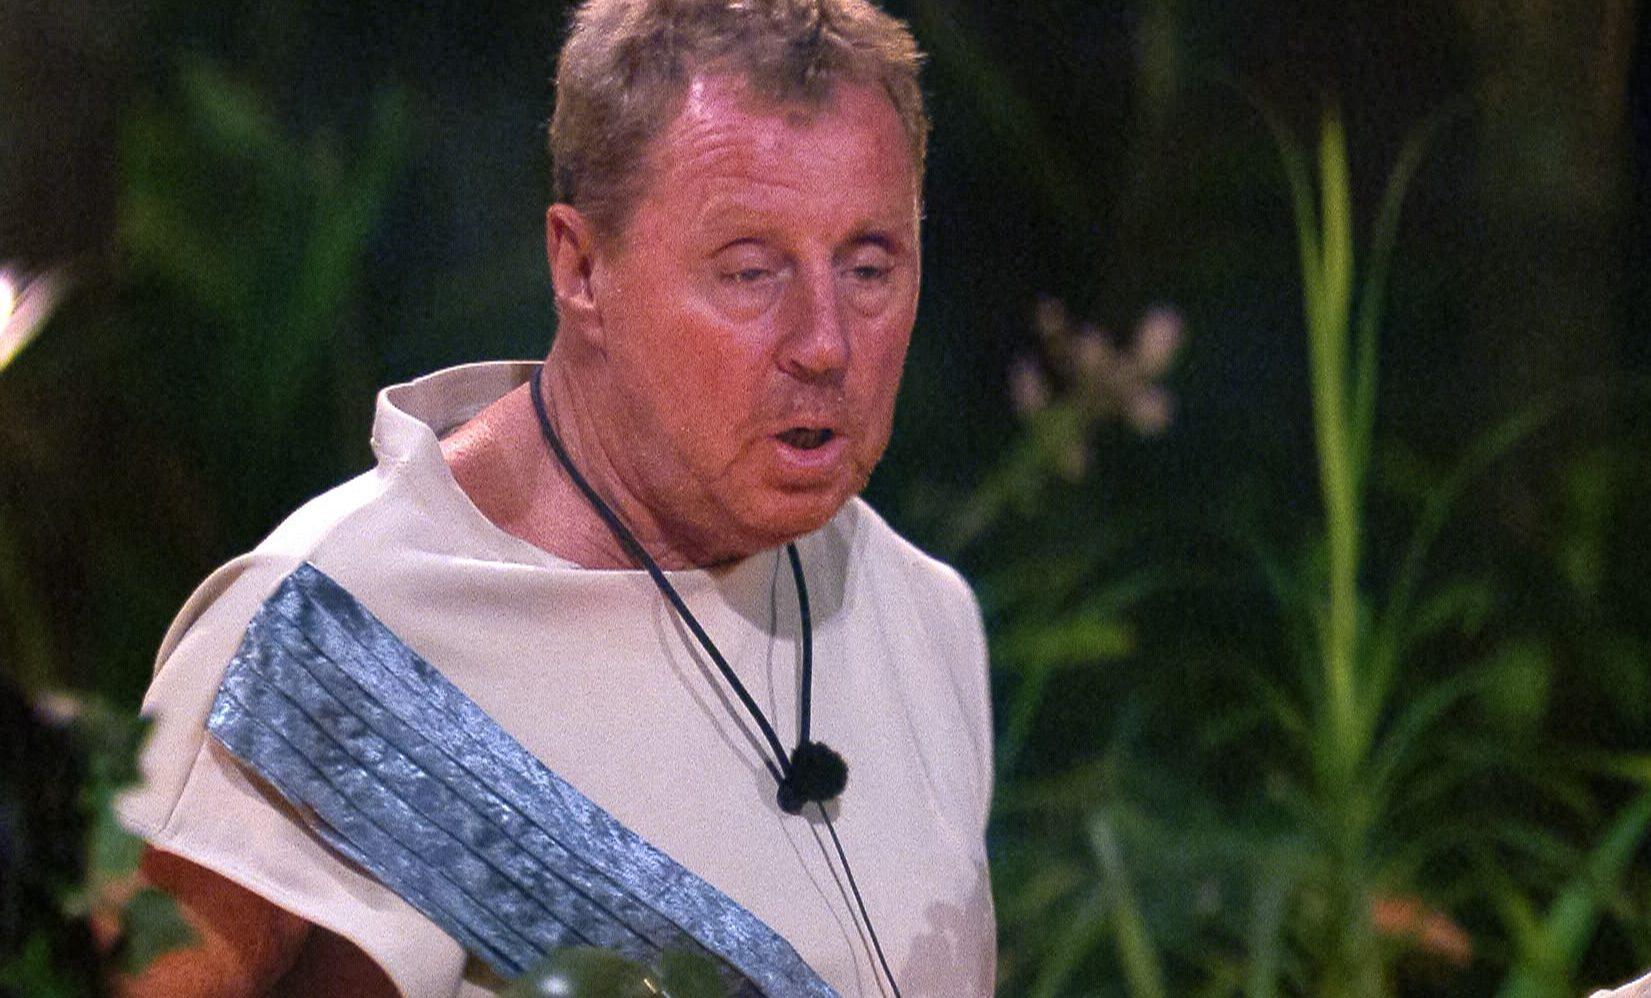 I'm A Celebrity's Fleur East asks Harry Redknapp who he'd like to 'rub off' and his reaction is priceless